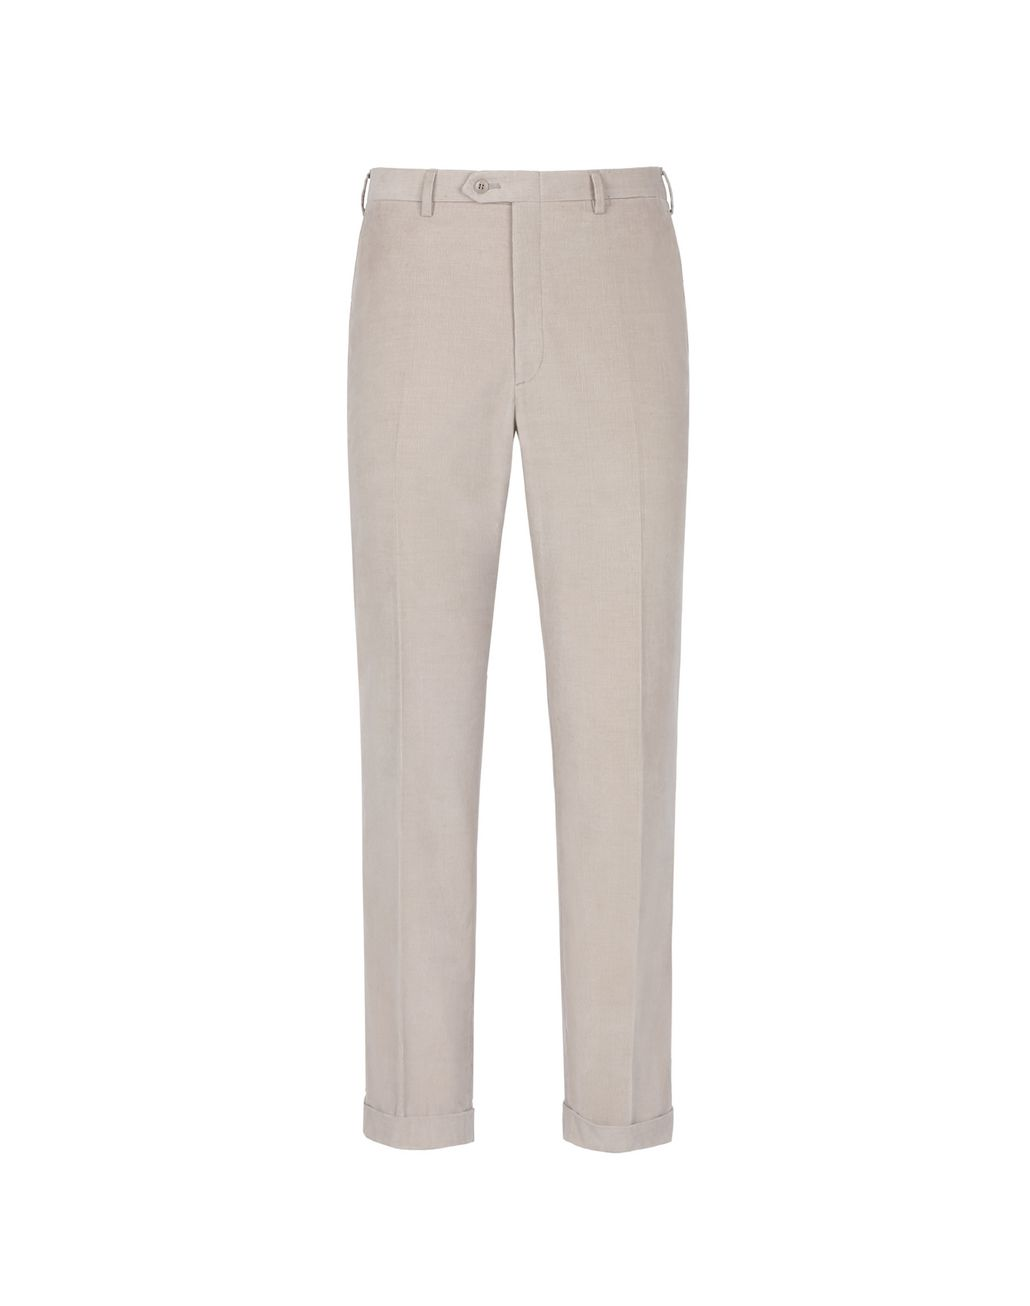 BRIONI Brown and Beige Trousers Trousers Man f